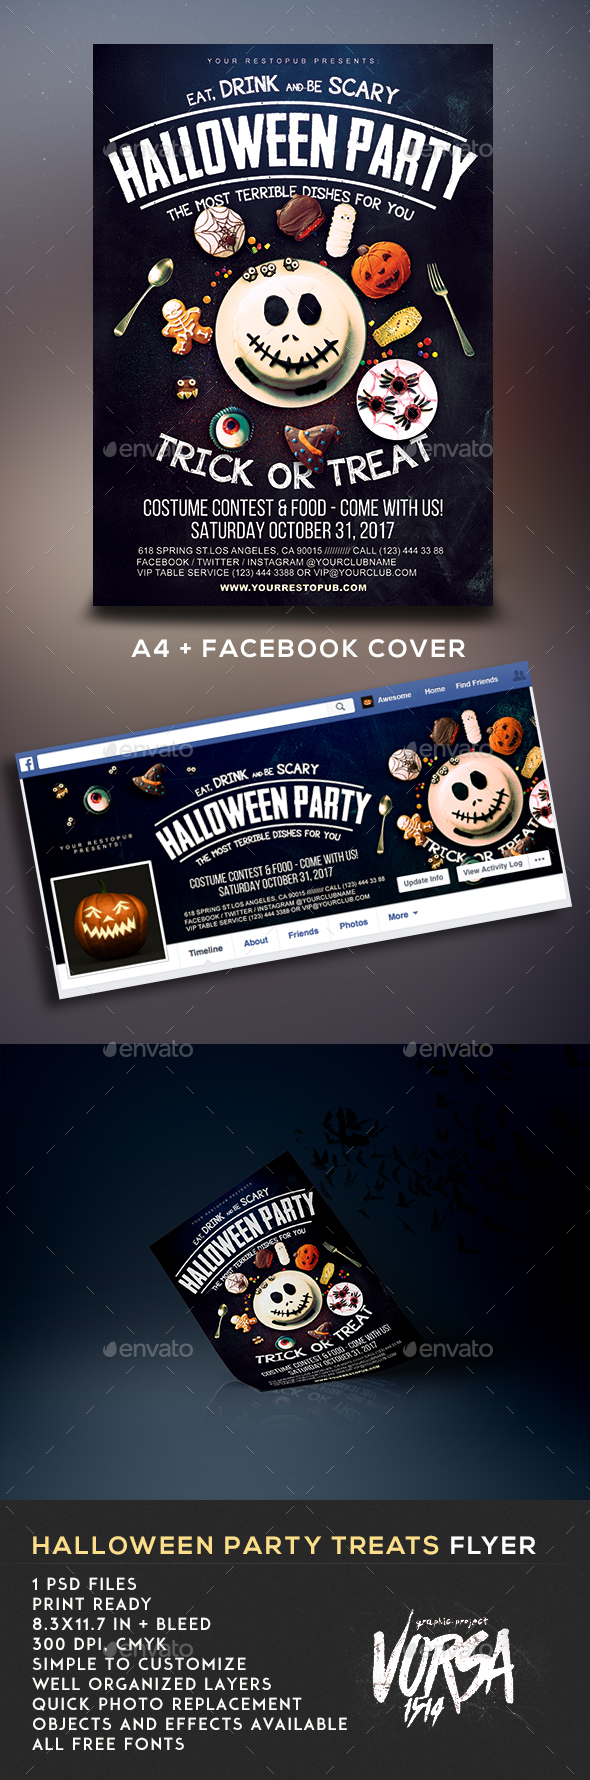 Halloween Party Treats Flyer